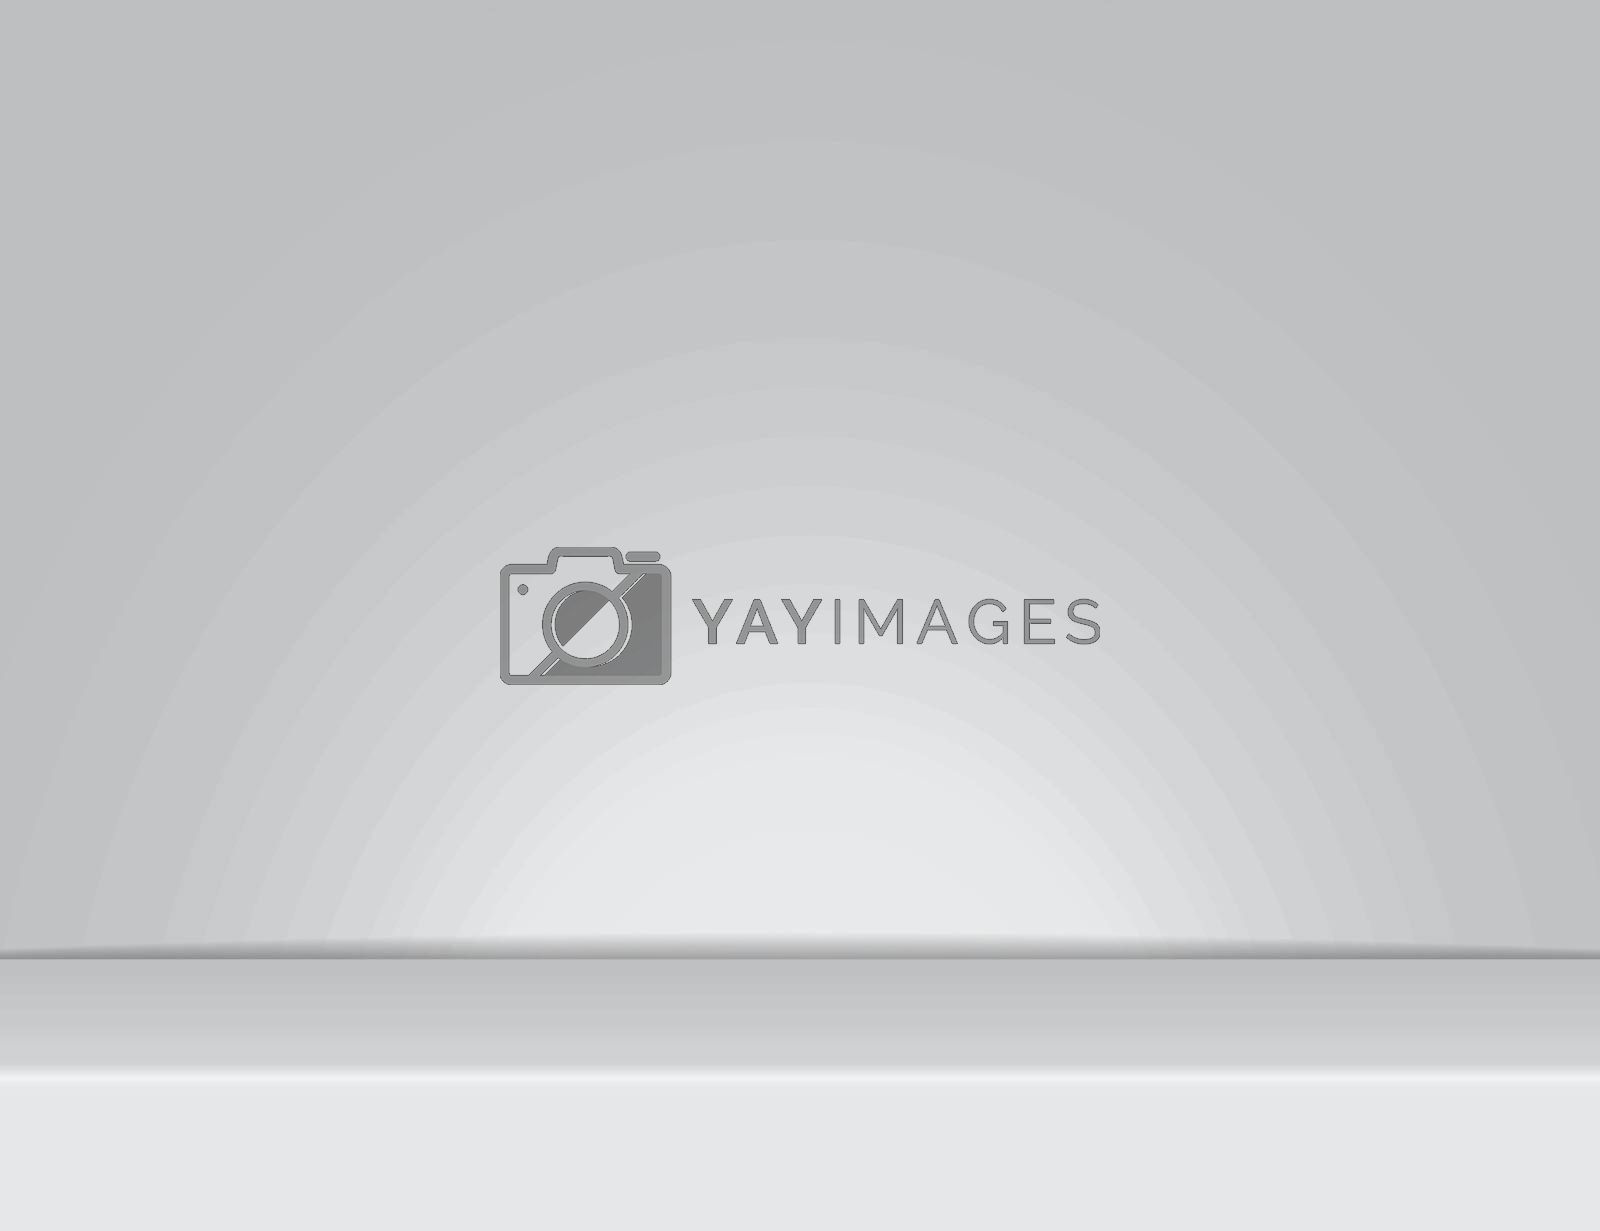 gray light rays room studio background for use in various applications and design products vector